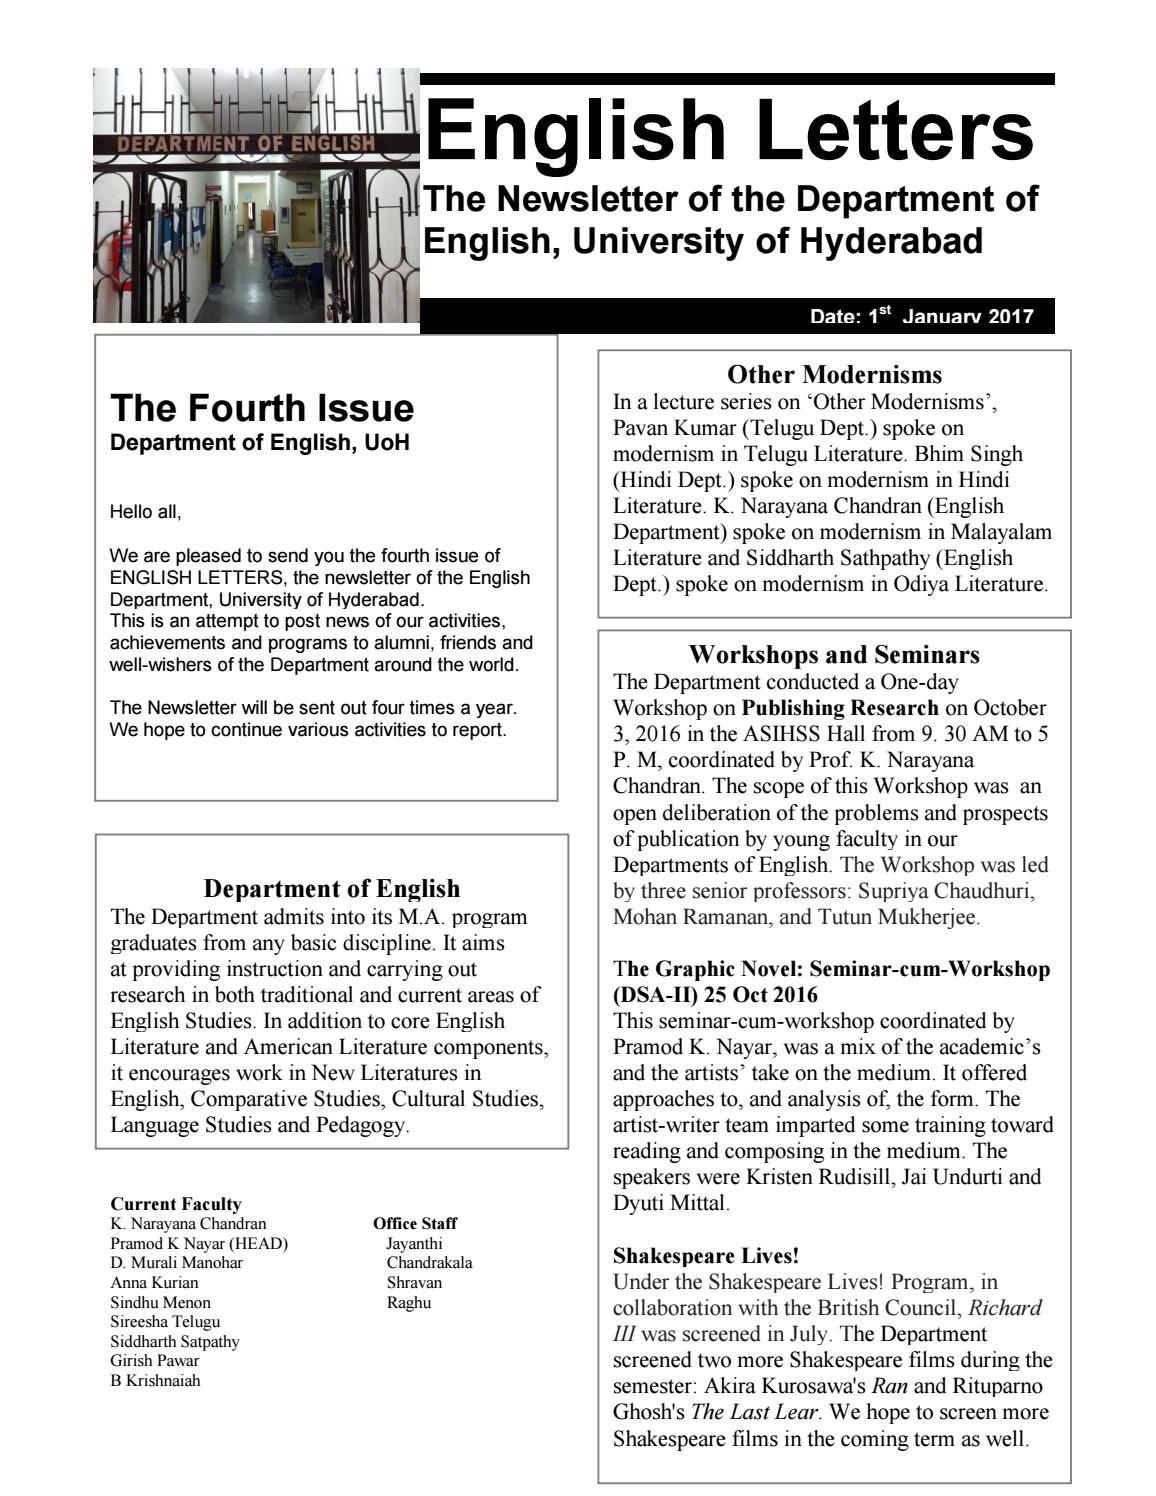 English Letters - Issue 4 by University of Hyderabad - issuu